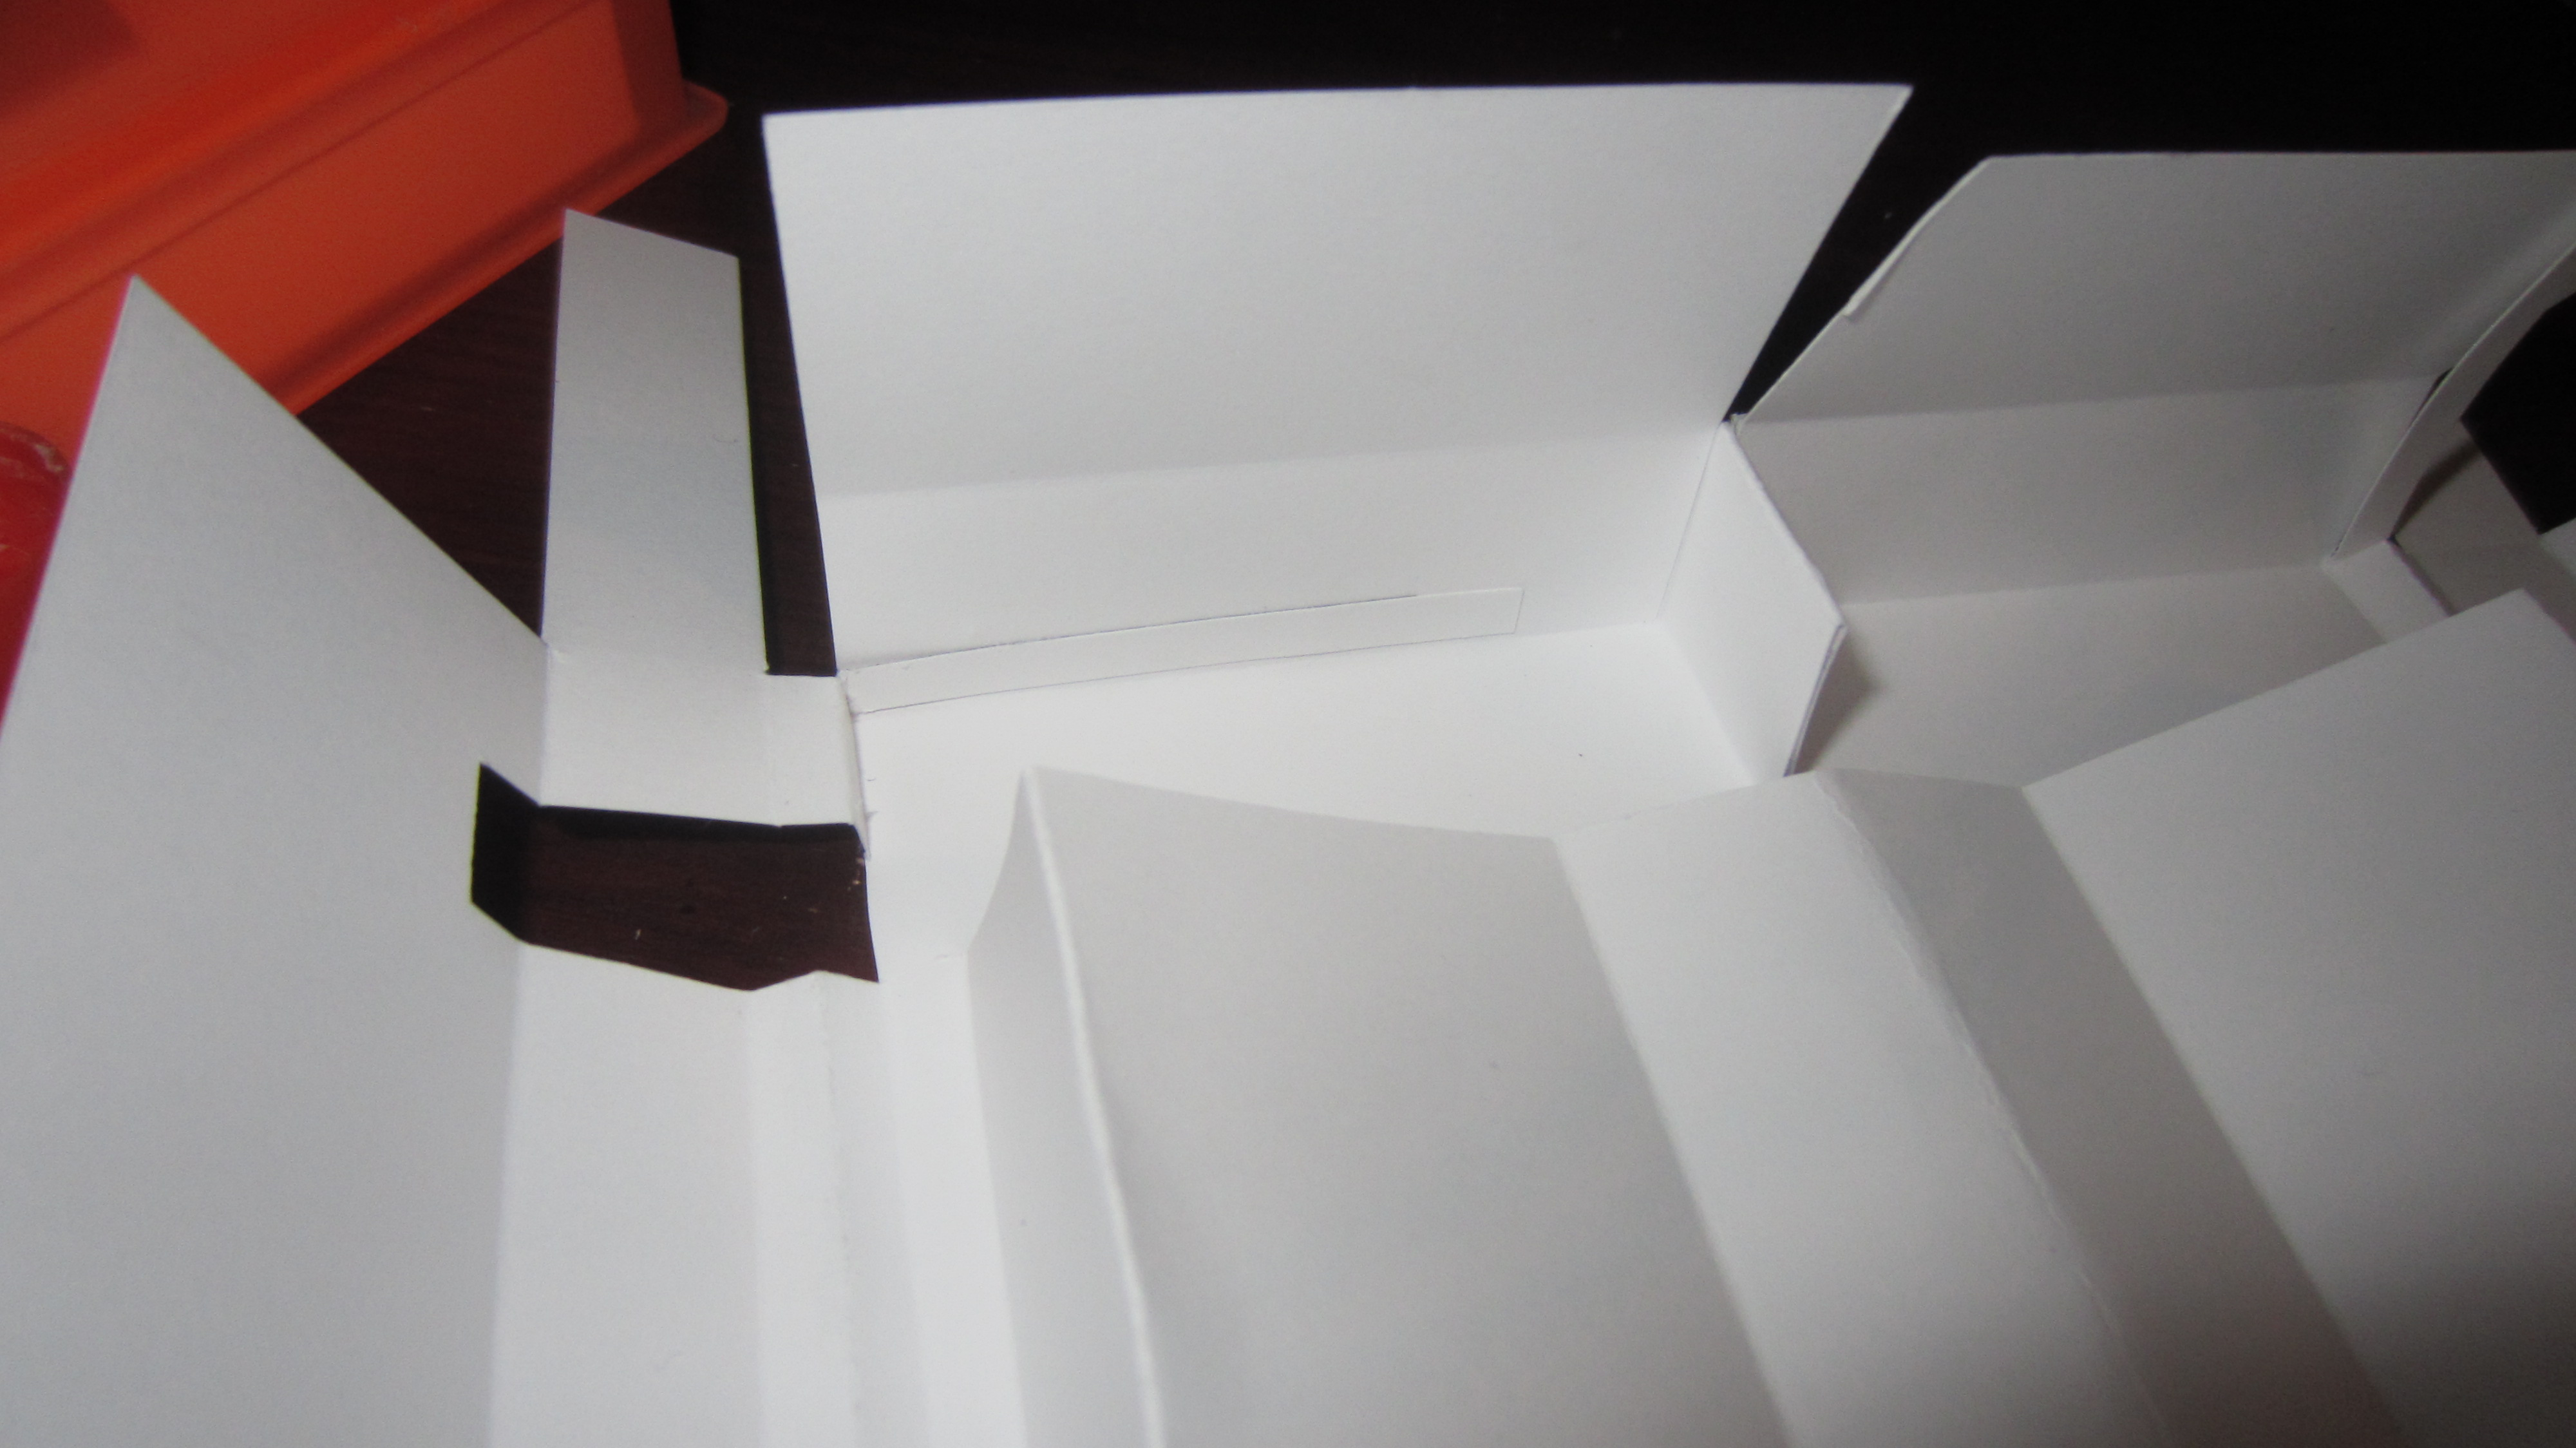 Picture of The Insert: Attaching the Small Flap